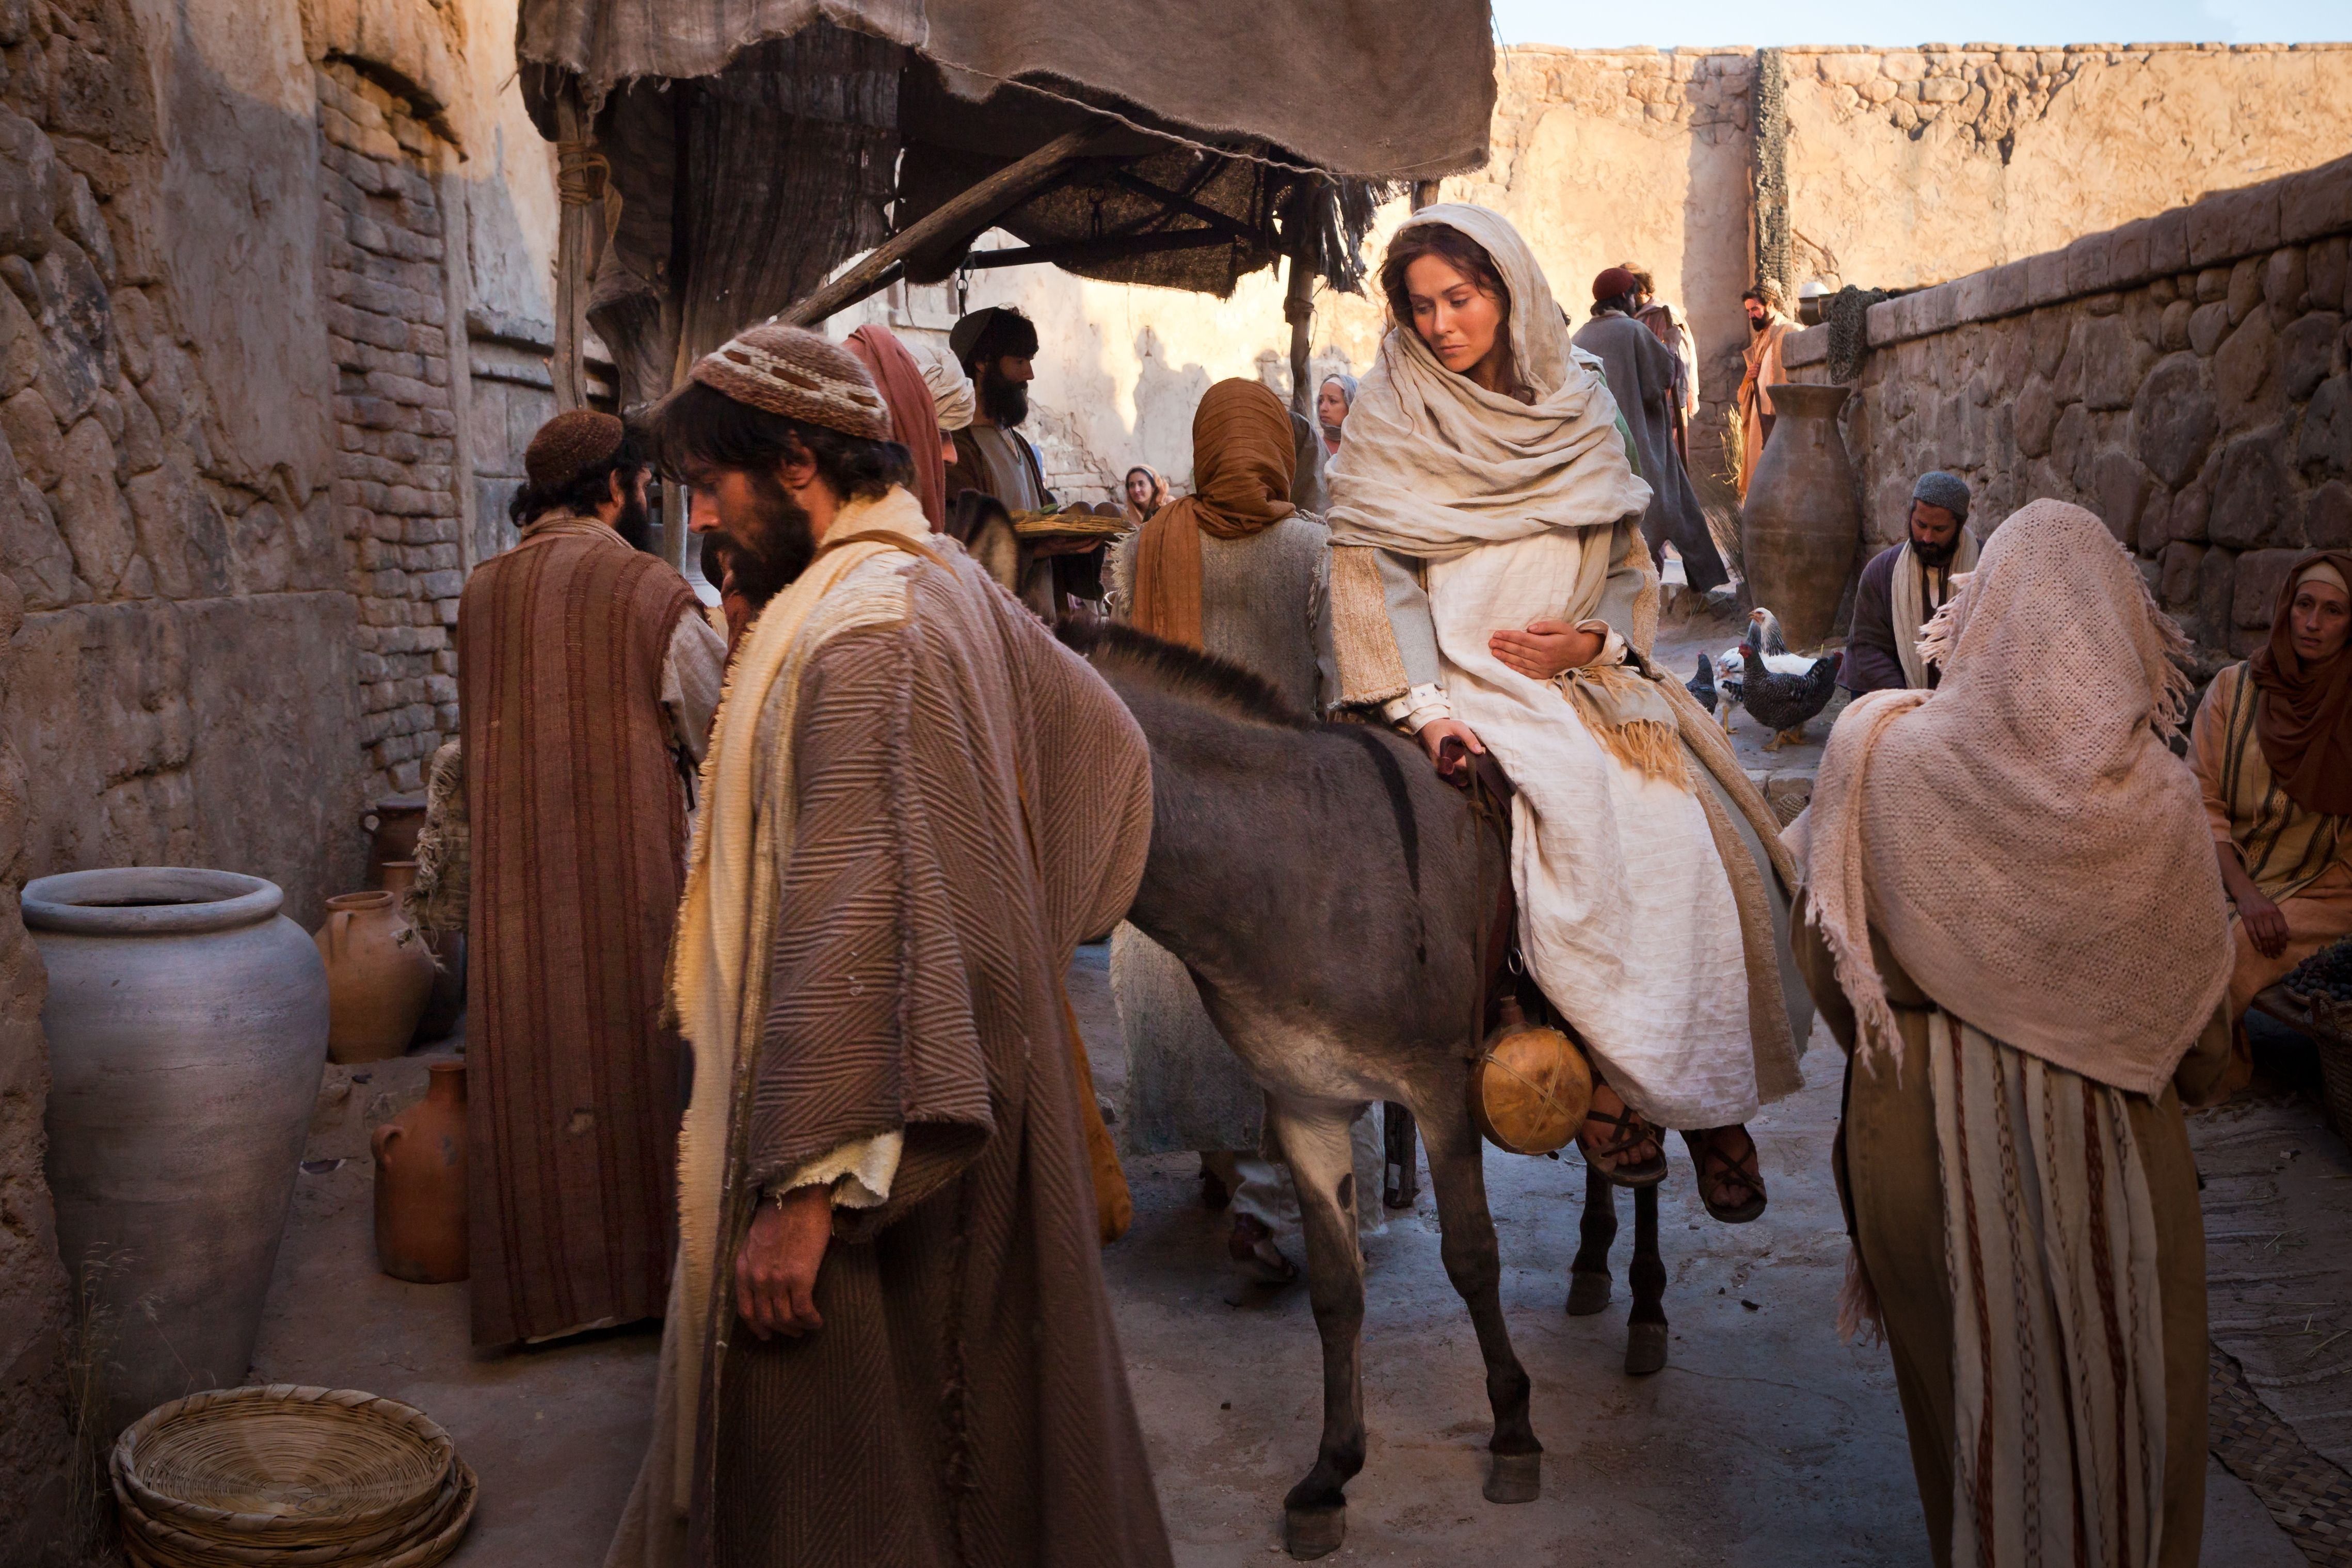 Mary and Joseph enter Bethlehem and begin searching for an inn.